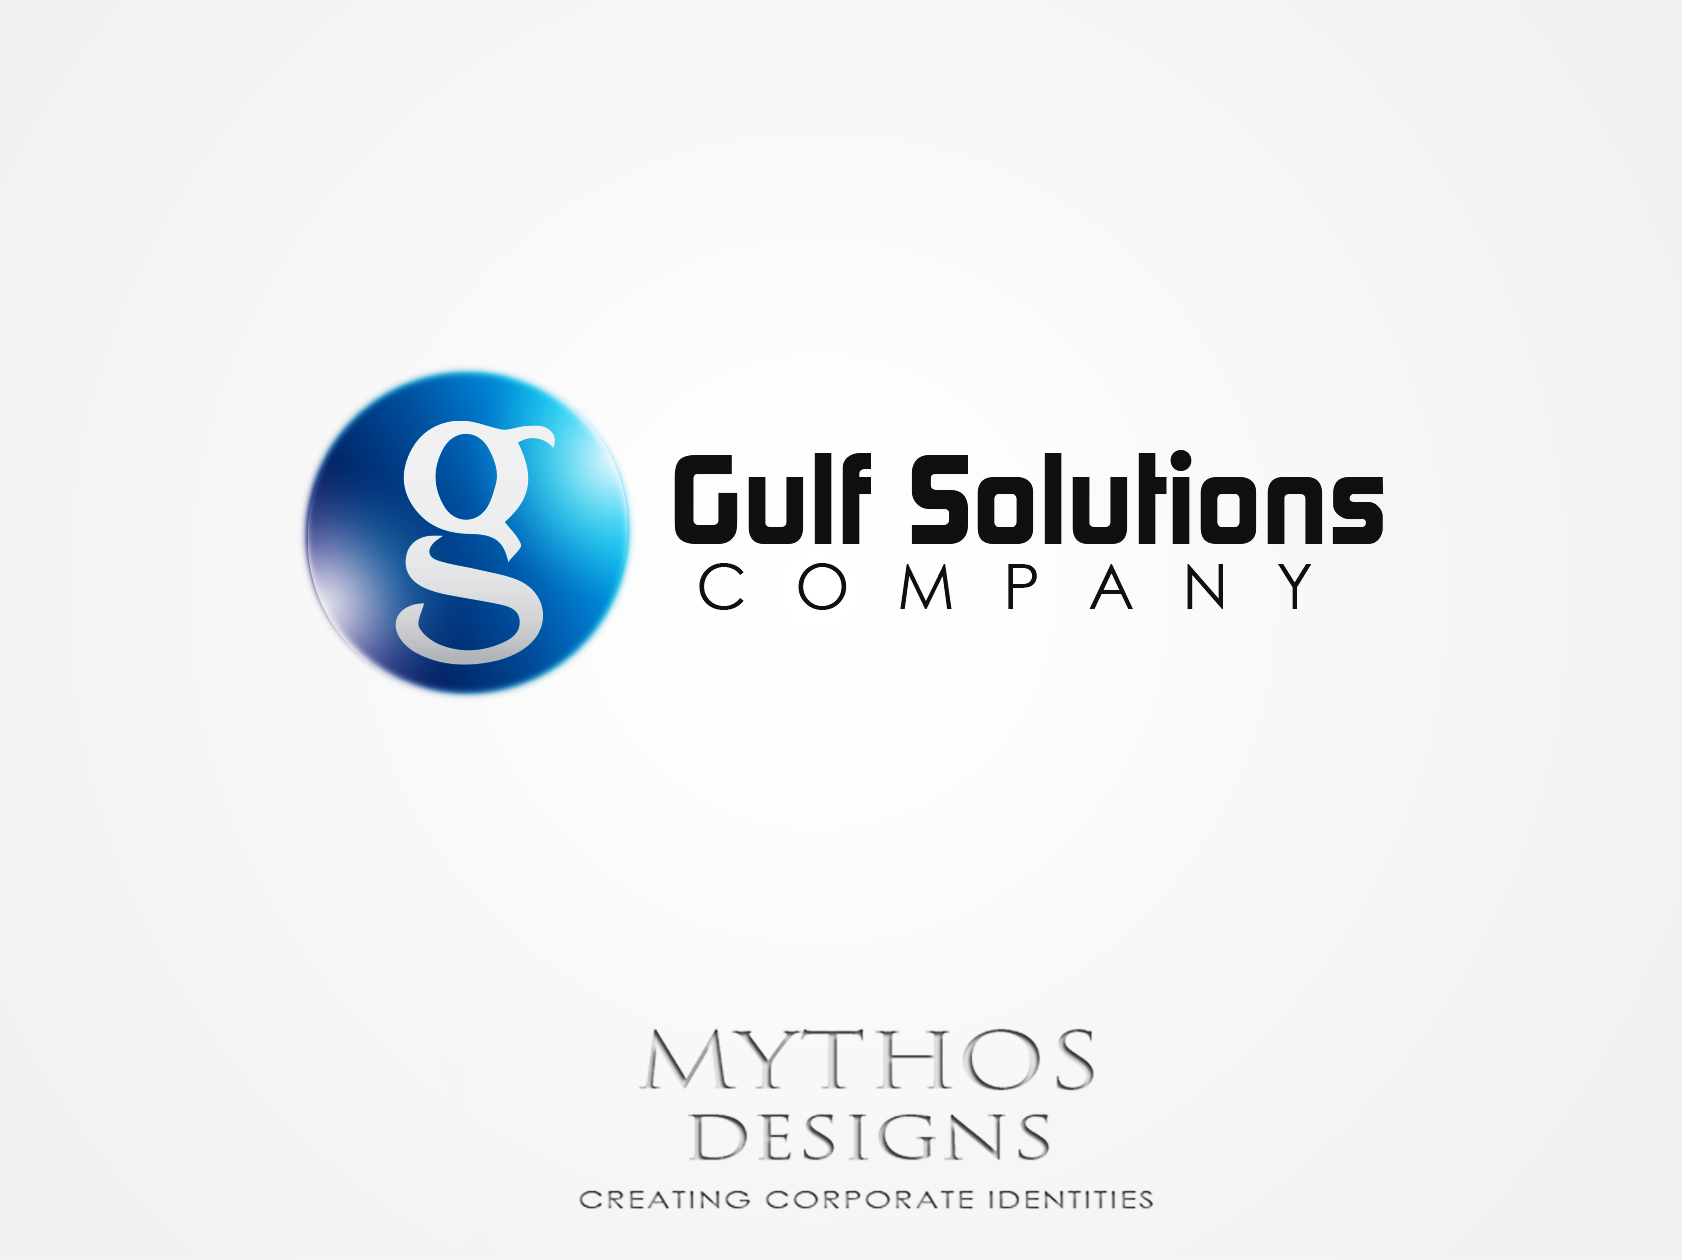 Logo Design by Mythos Designs - Entry No. 24 in the Logo Design Contest New Logo Design for Gulf solutions company.